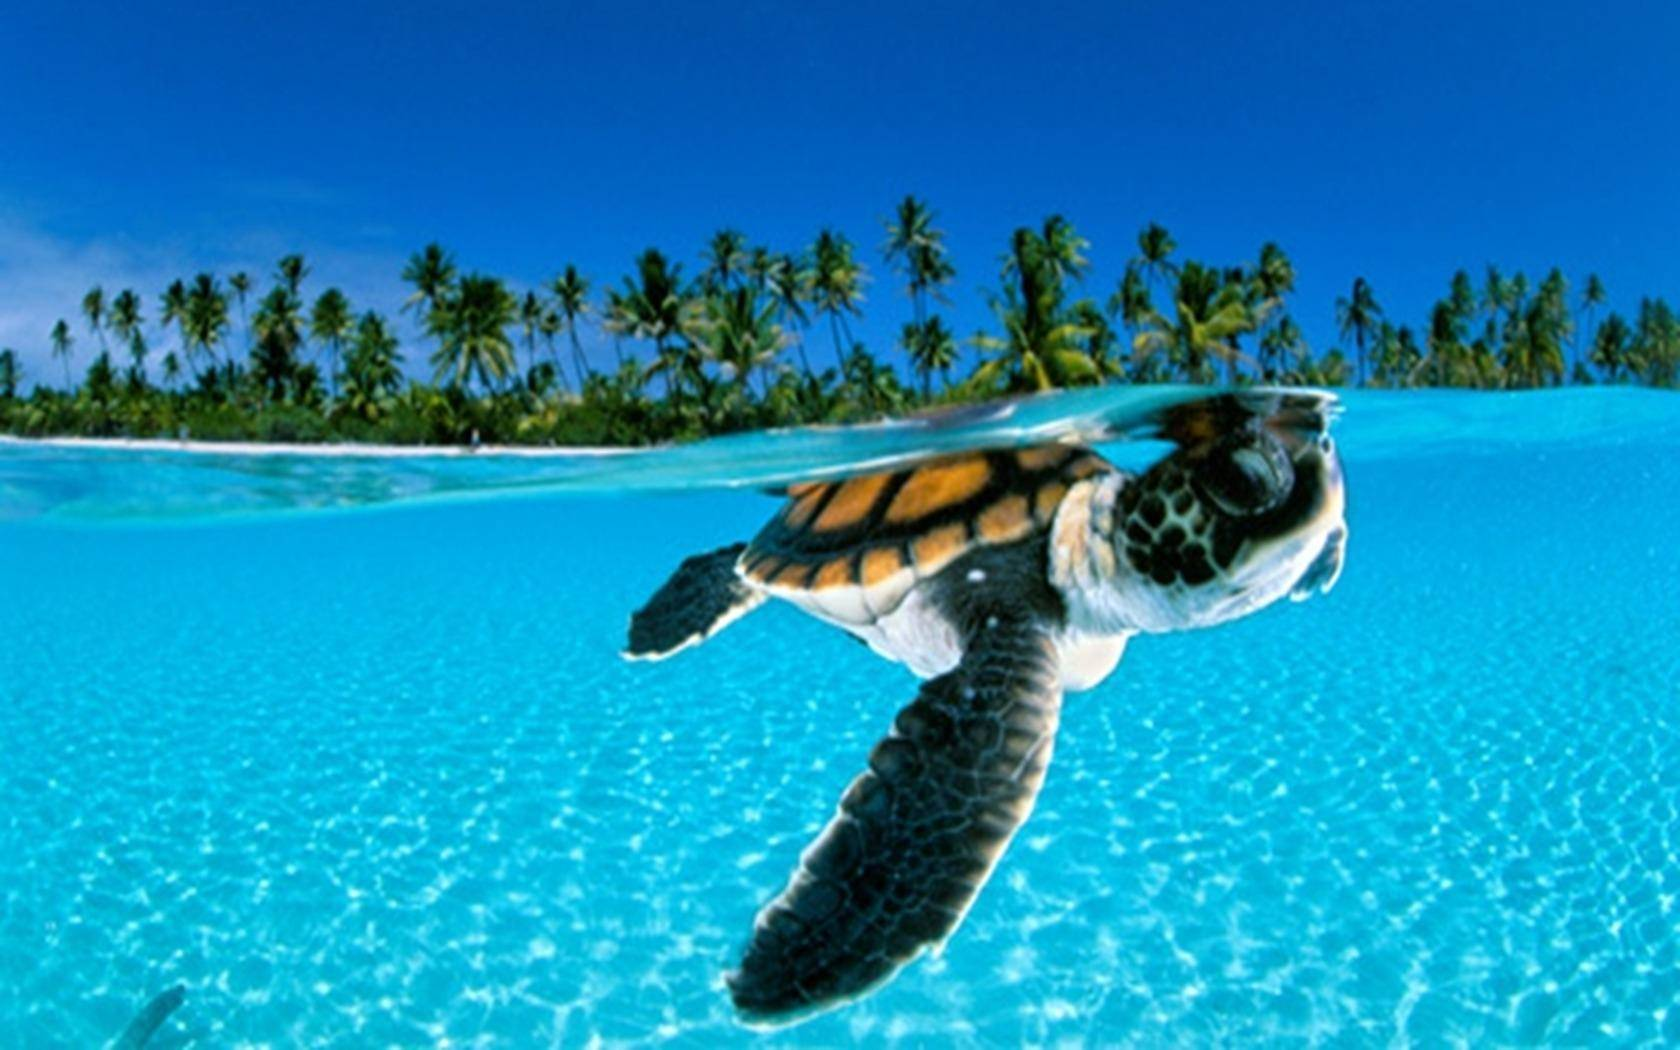 Turtle Wallpapers - Top Free Turtle